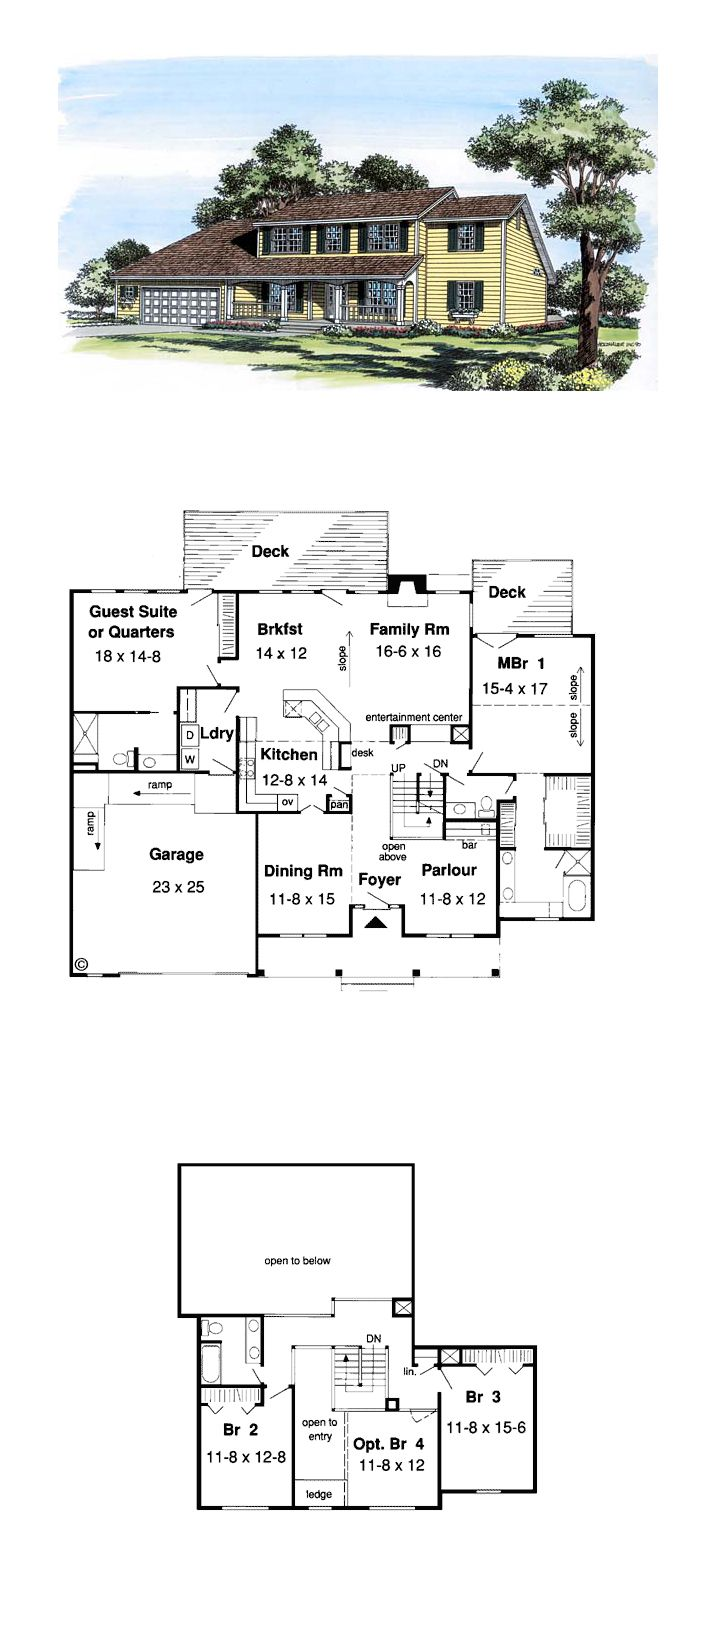 Saltbox Style House Plan 20404 With 5 Bed 4 Bath 2 Car Garage House Plans Two Story House Plans How To Plan